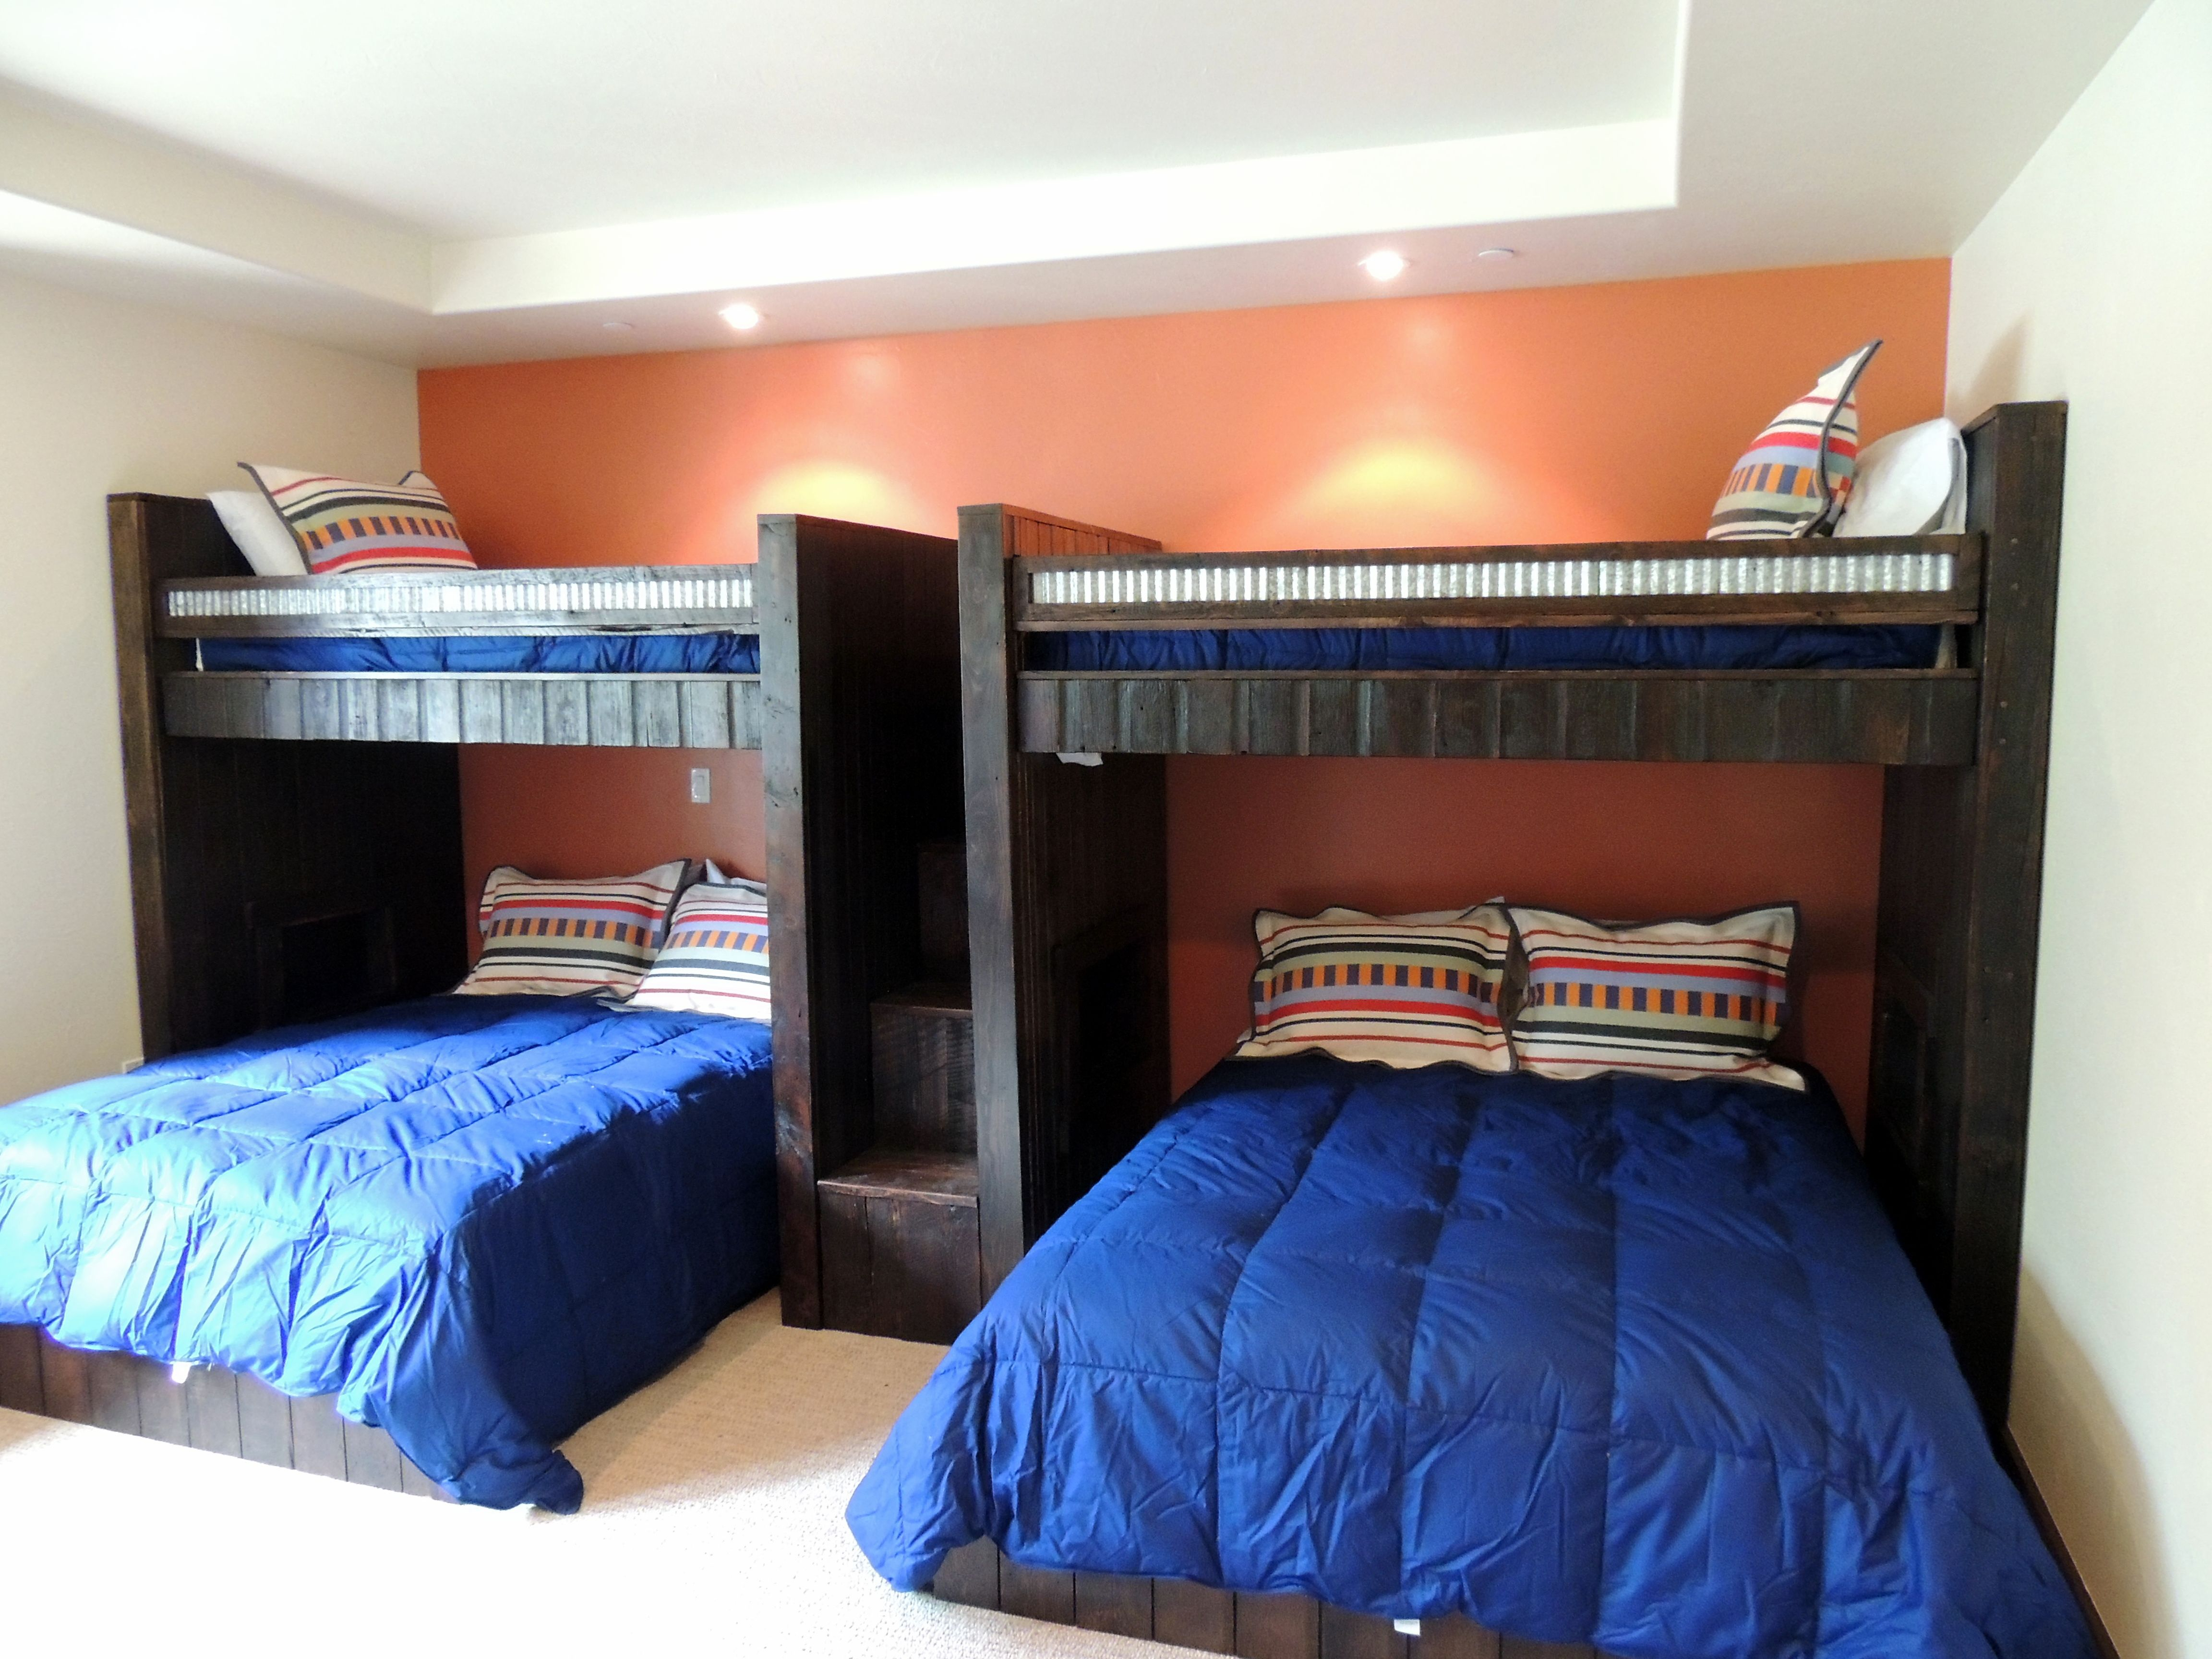 Custom bunk beds twin lofts over queen platform beds 2 twin beds make a queen